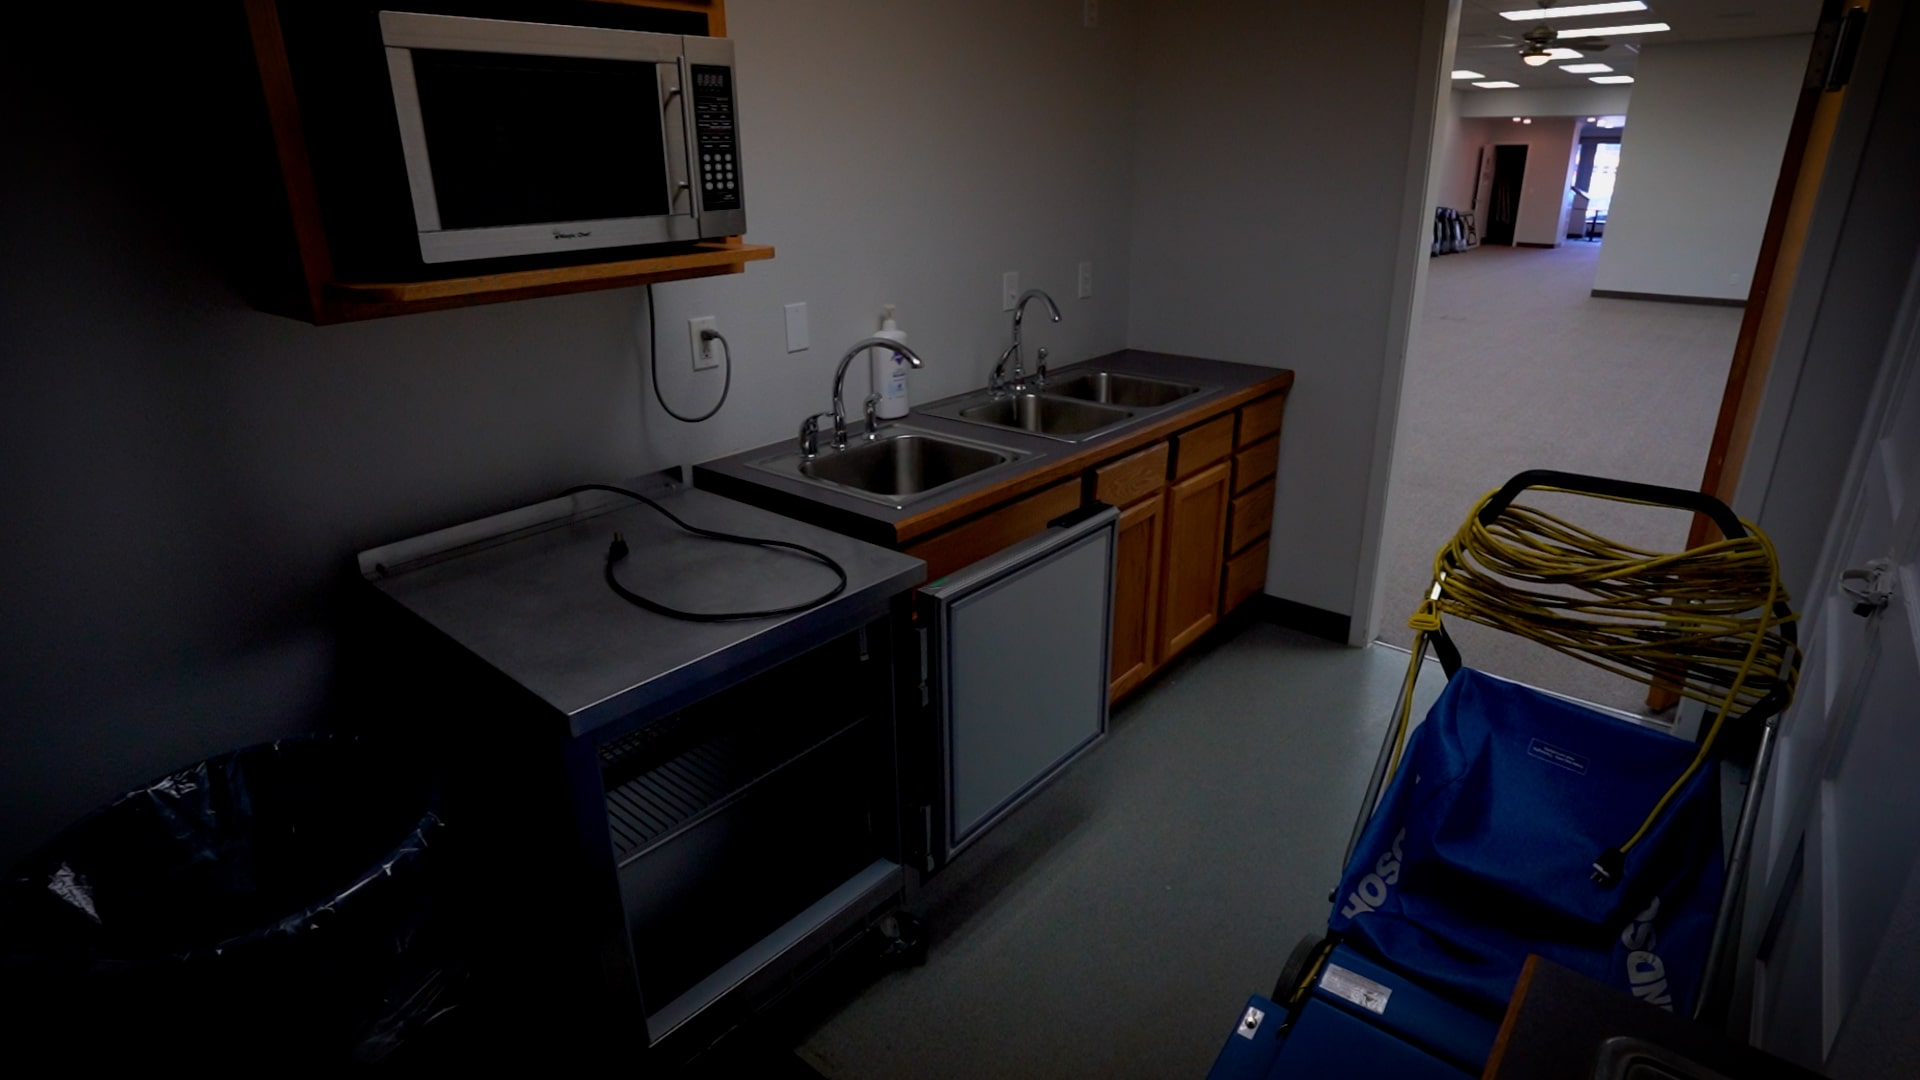 Kitchen with Microwave, Fridge, and Sinks in the Dille Center